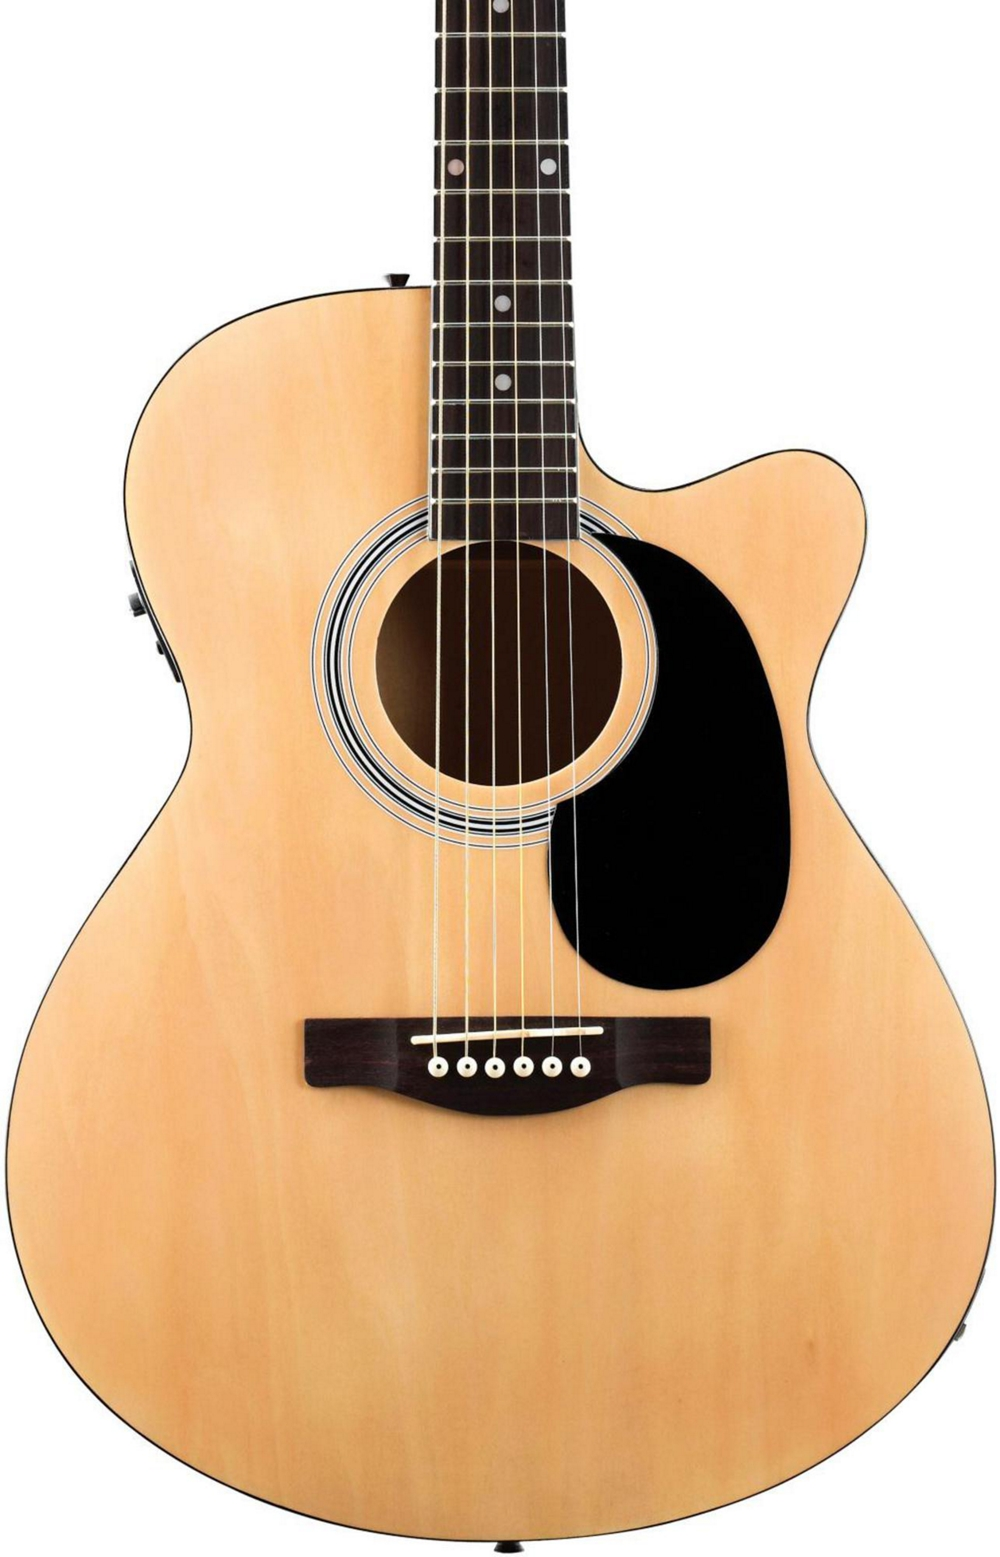 Fender Acoustic Electric Guitar : fender fa 135ce cutaway concert acoustic electric guitar natural 885978058860 ebay ~ Vivirlamusica.com Haus und Dekorationen